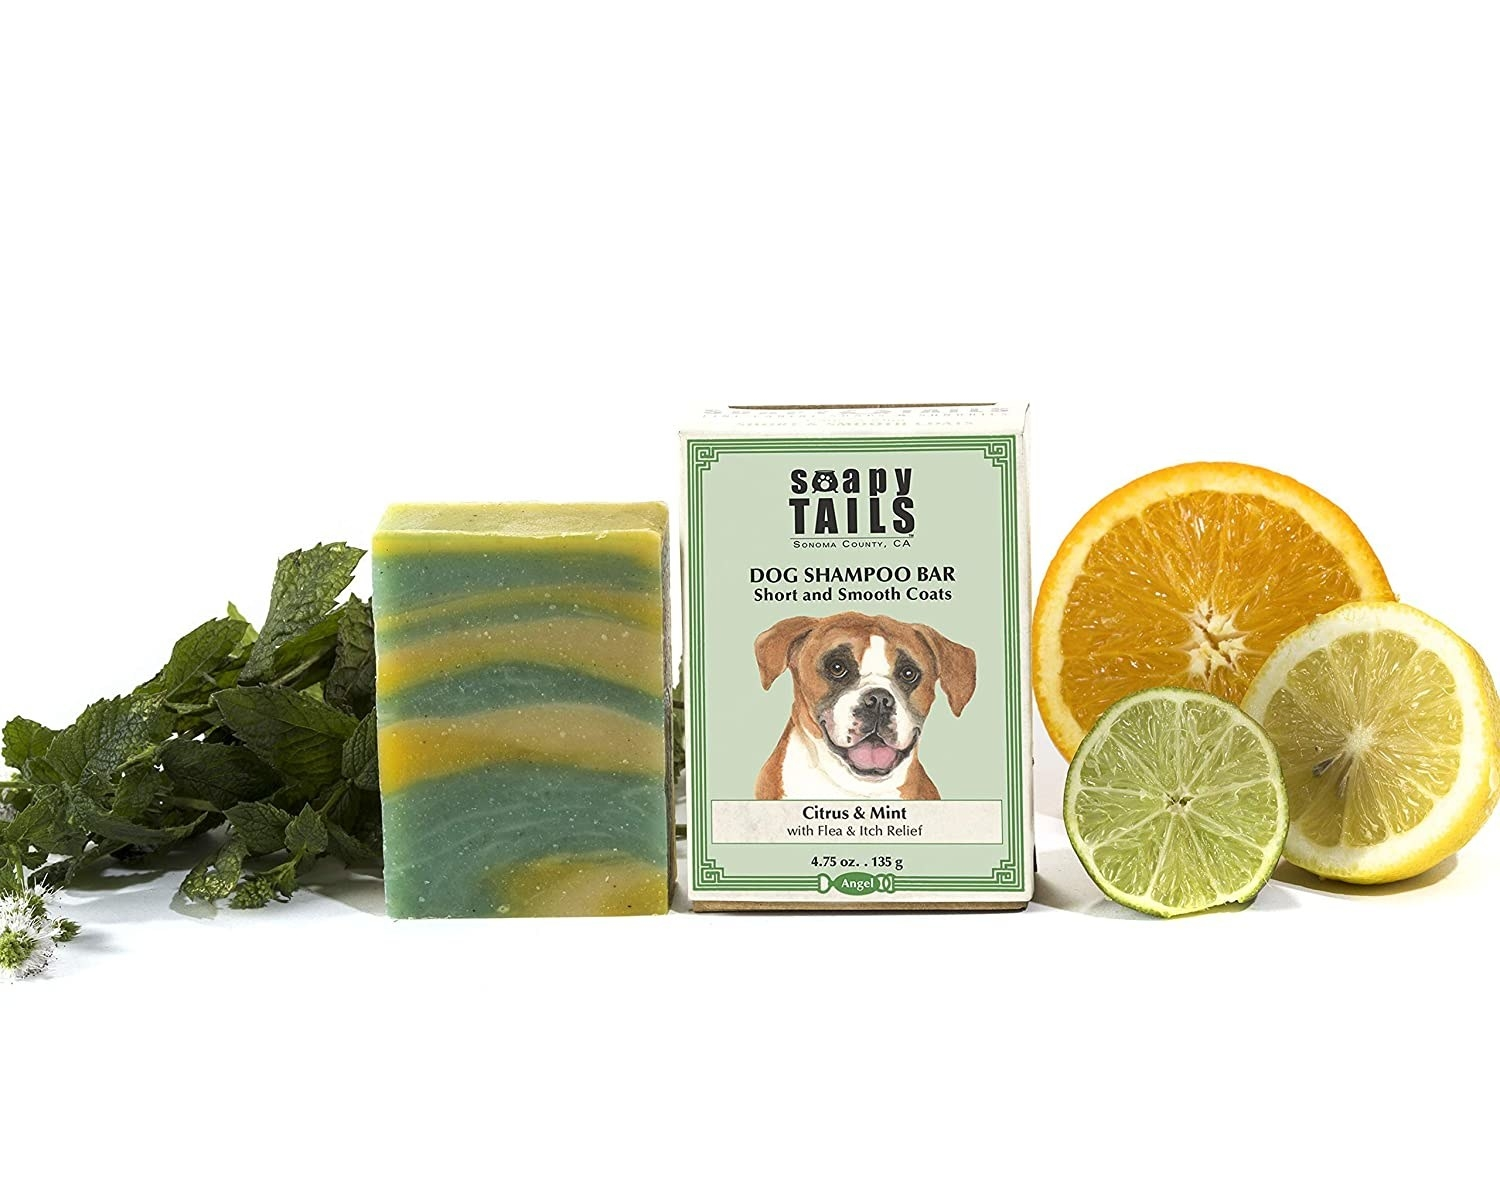 the soap bar with the product box featuring a lovely dog illustration